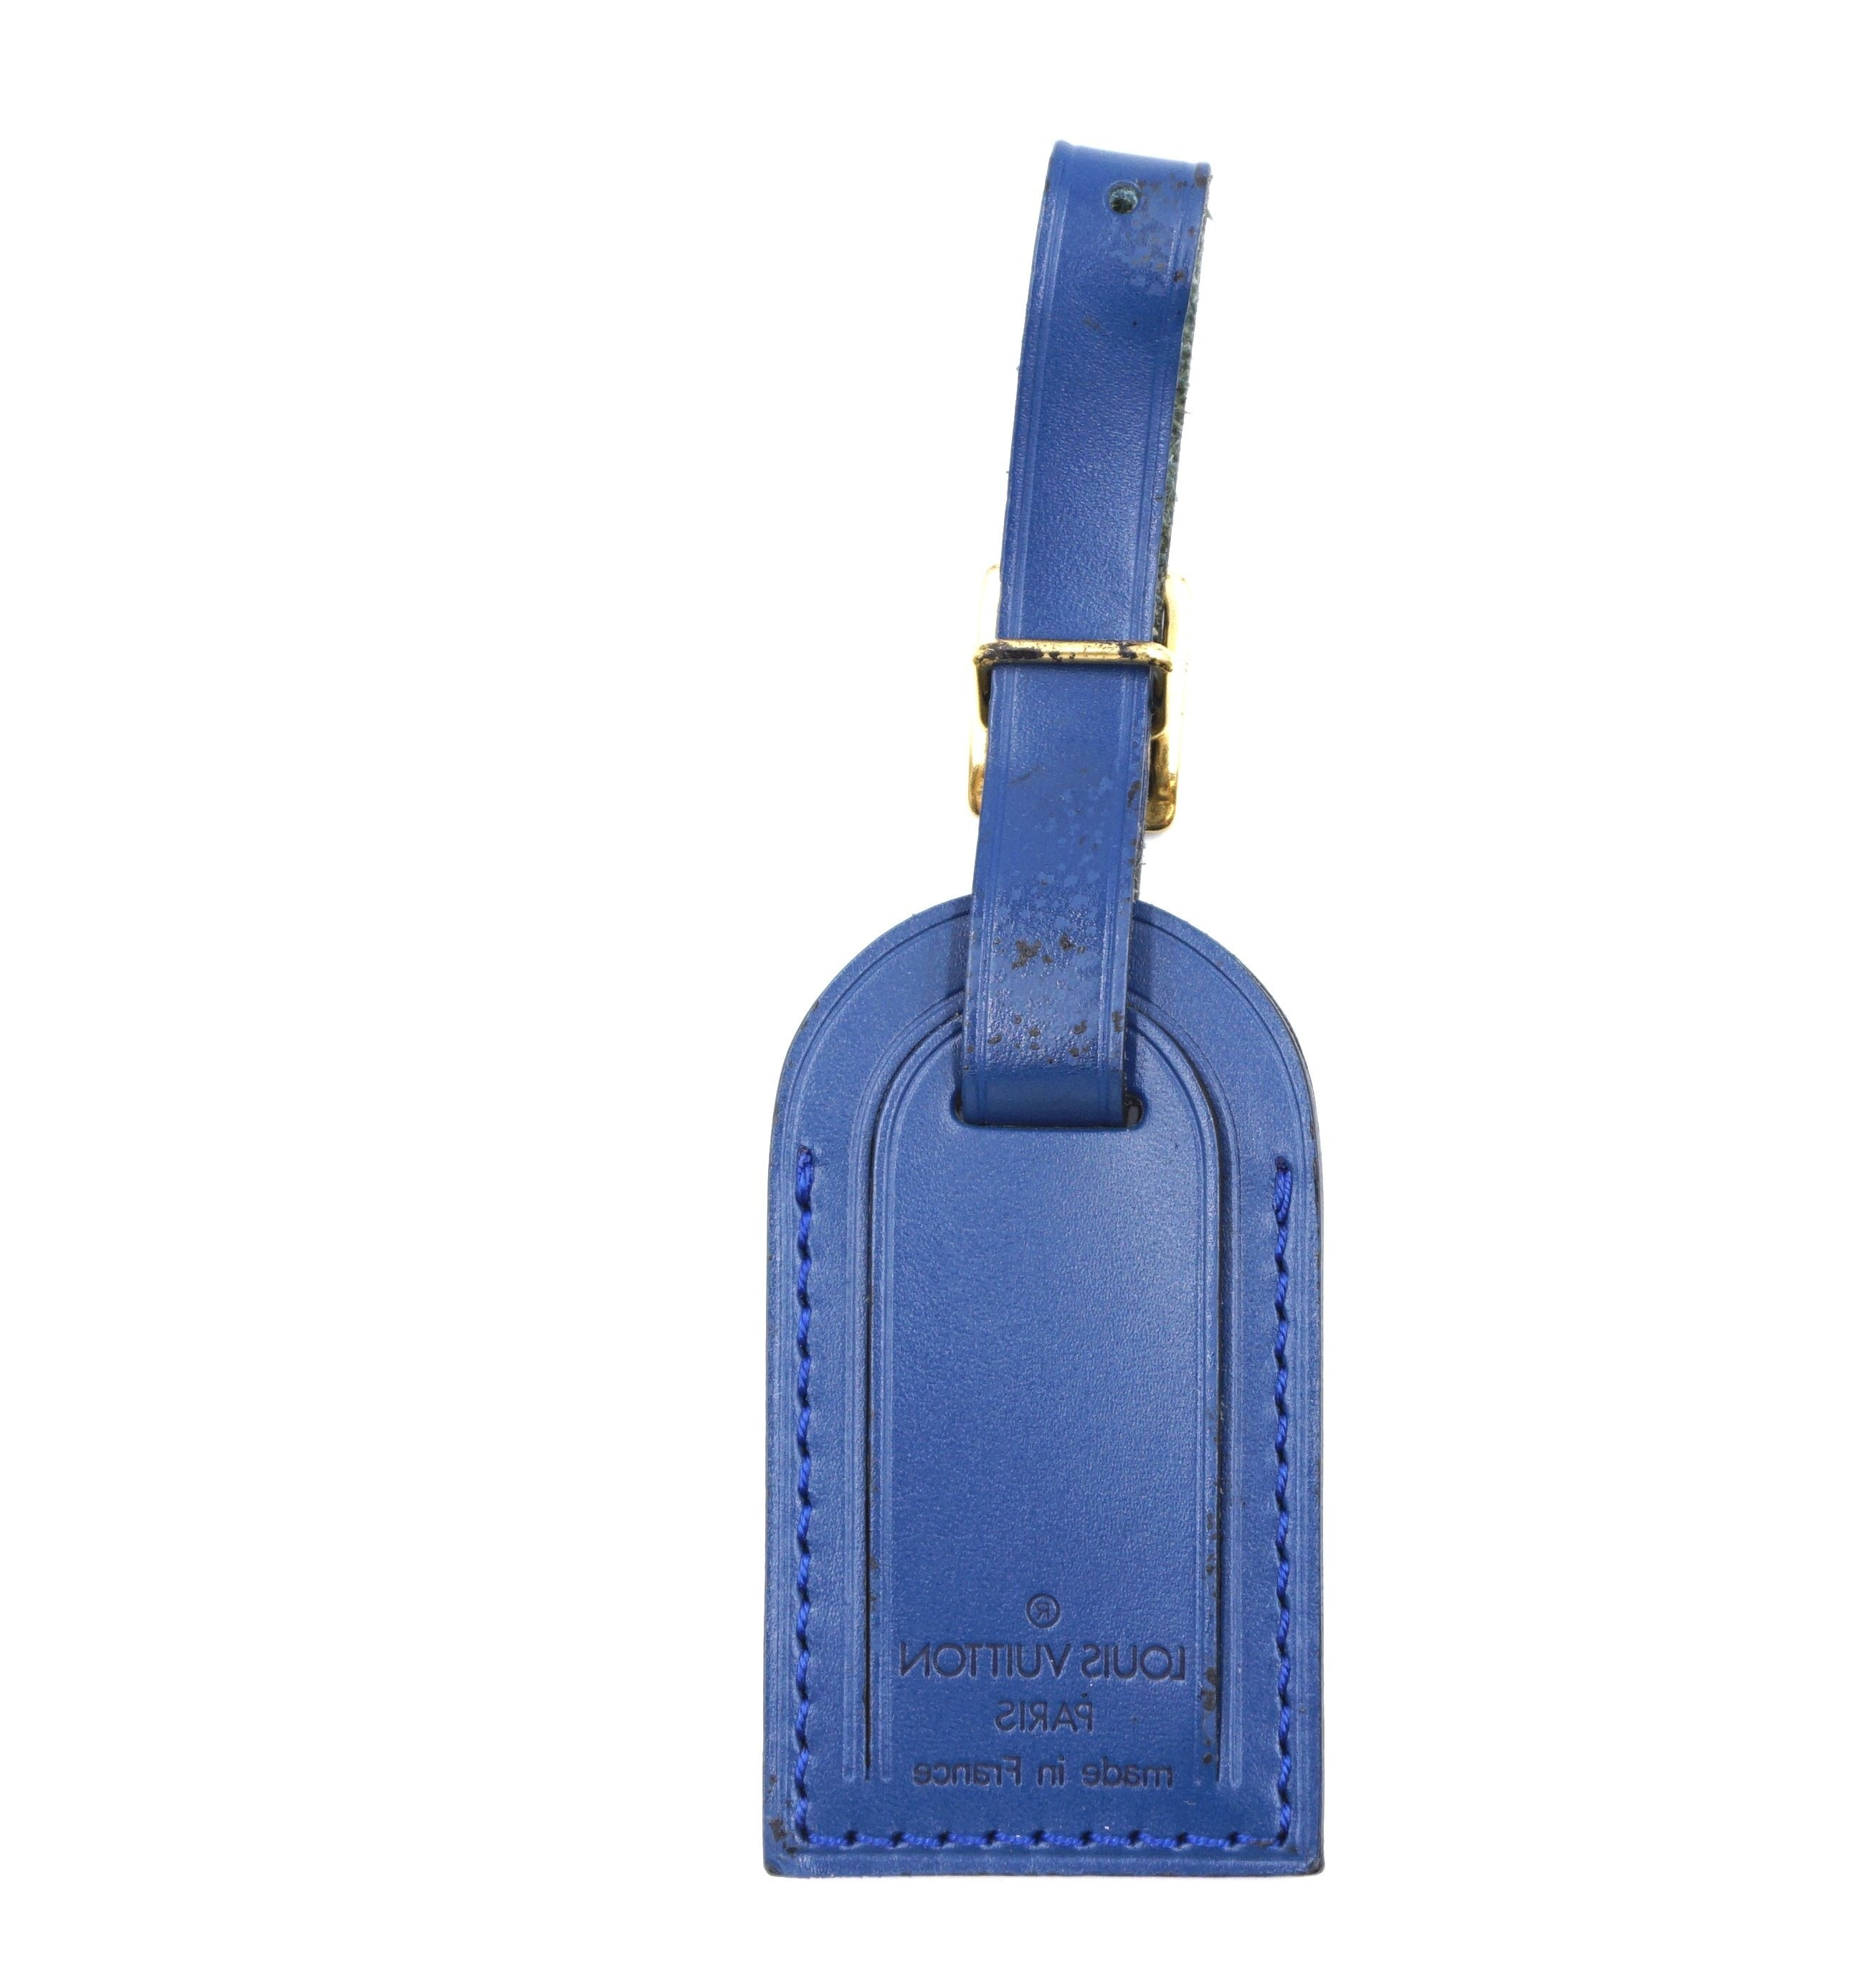 Louis Vuitton Blue Small Smooth Calf Leather Luggage Tag